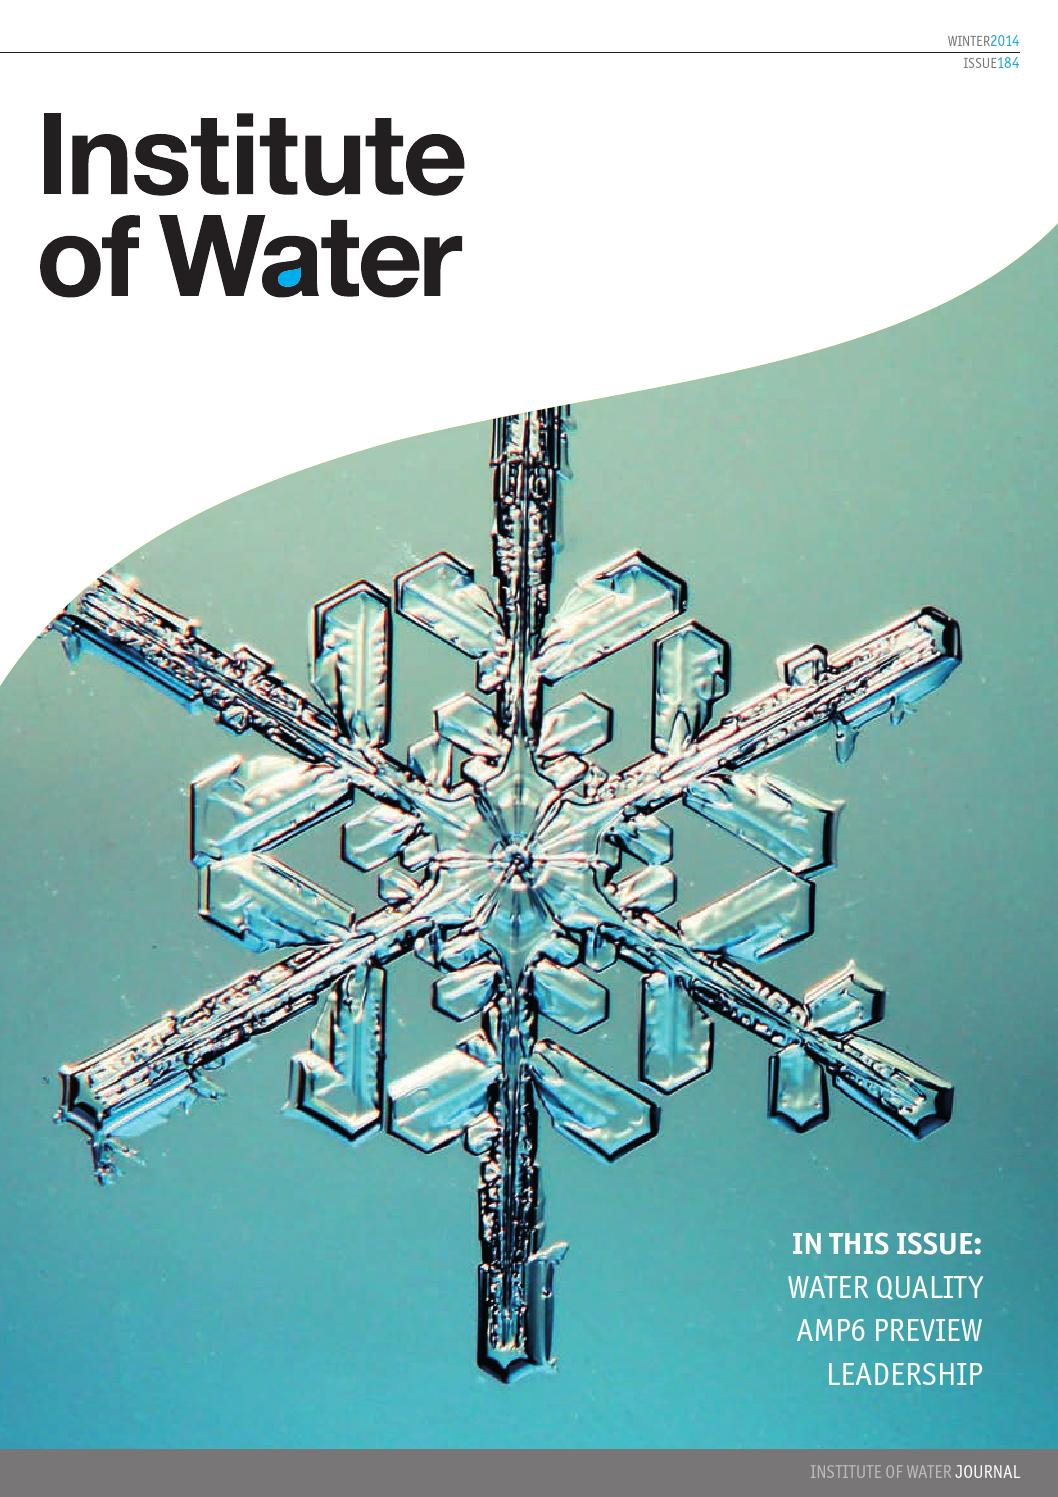 Institute of Water 184 by Distinctive Publishing - issuu